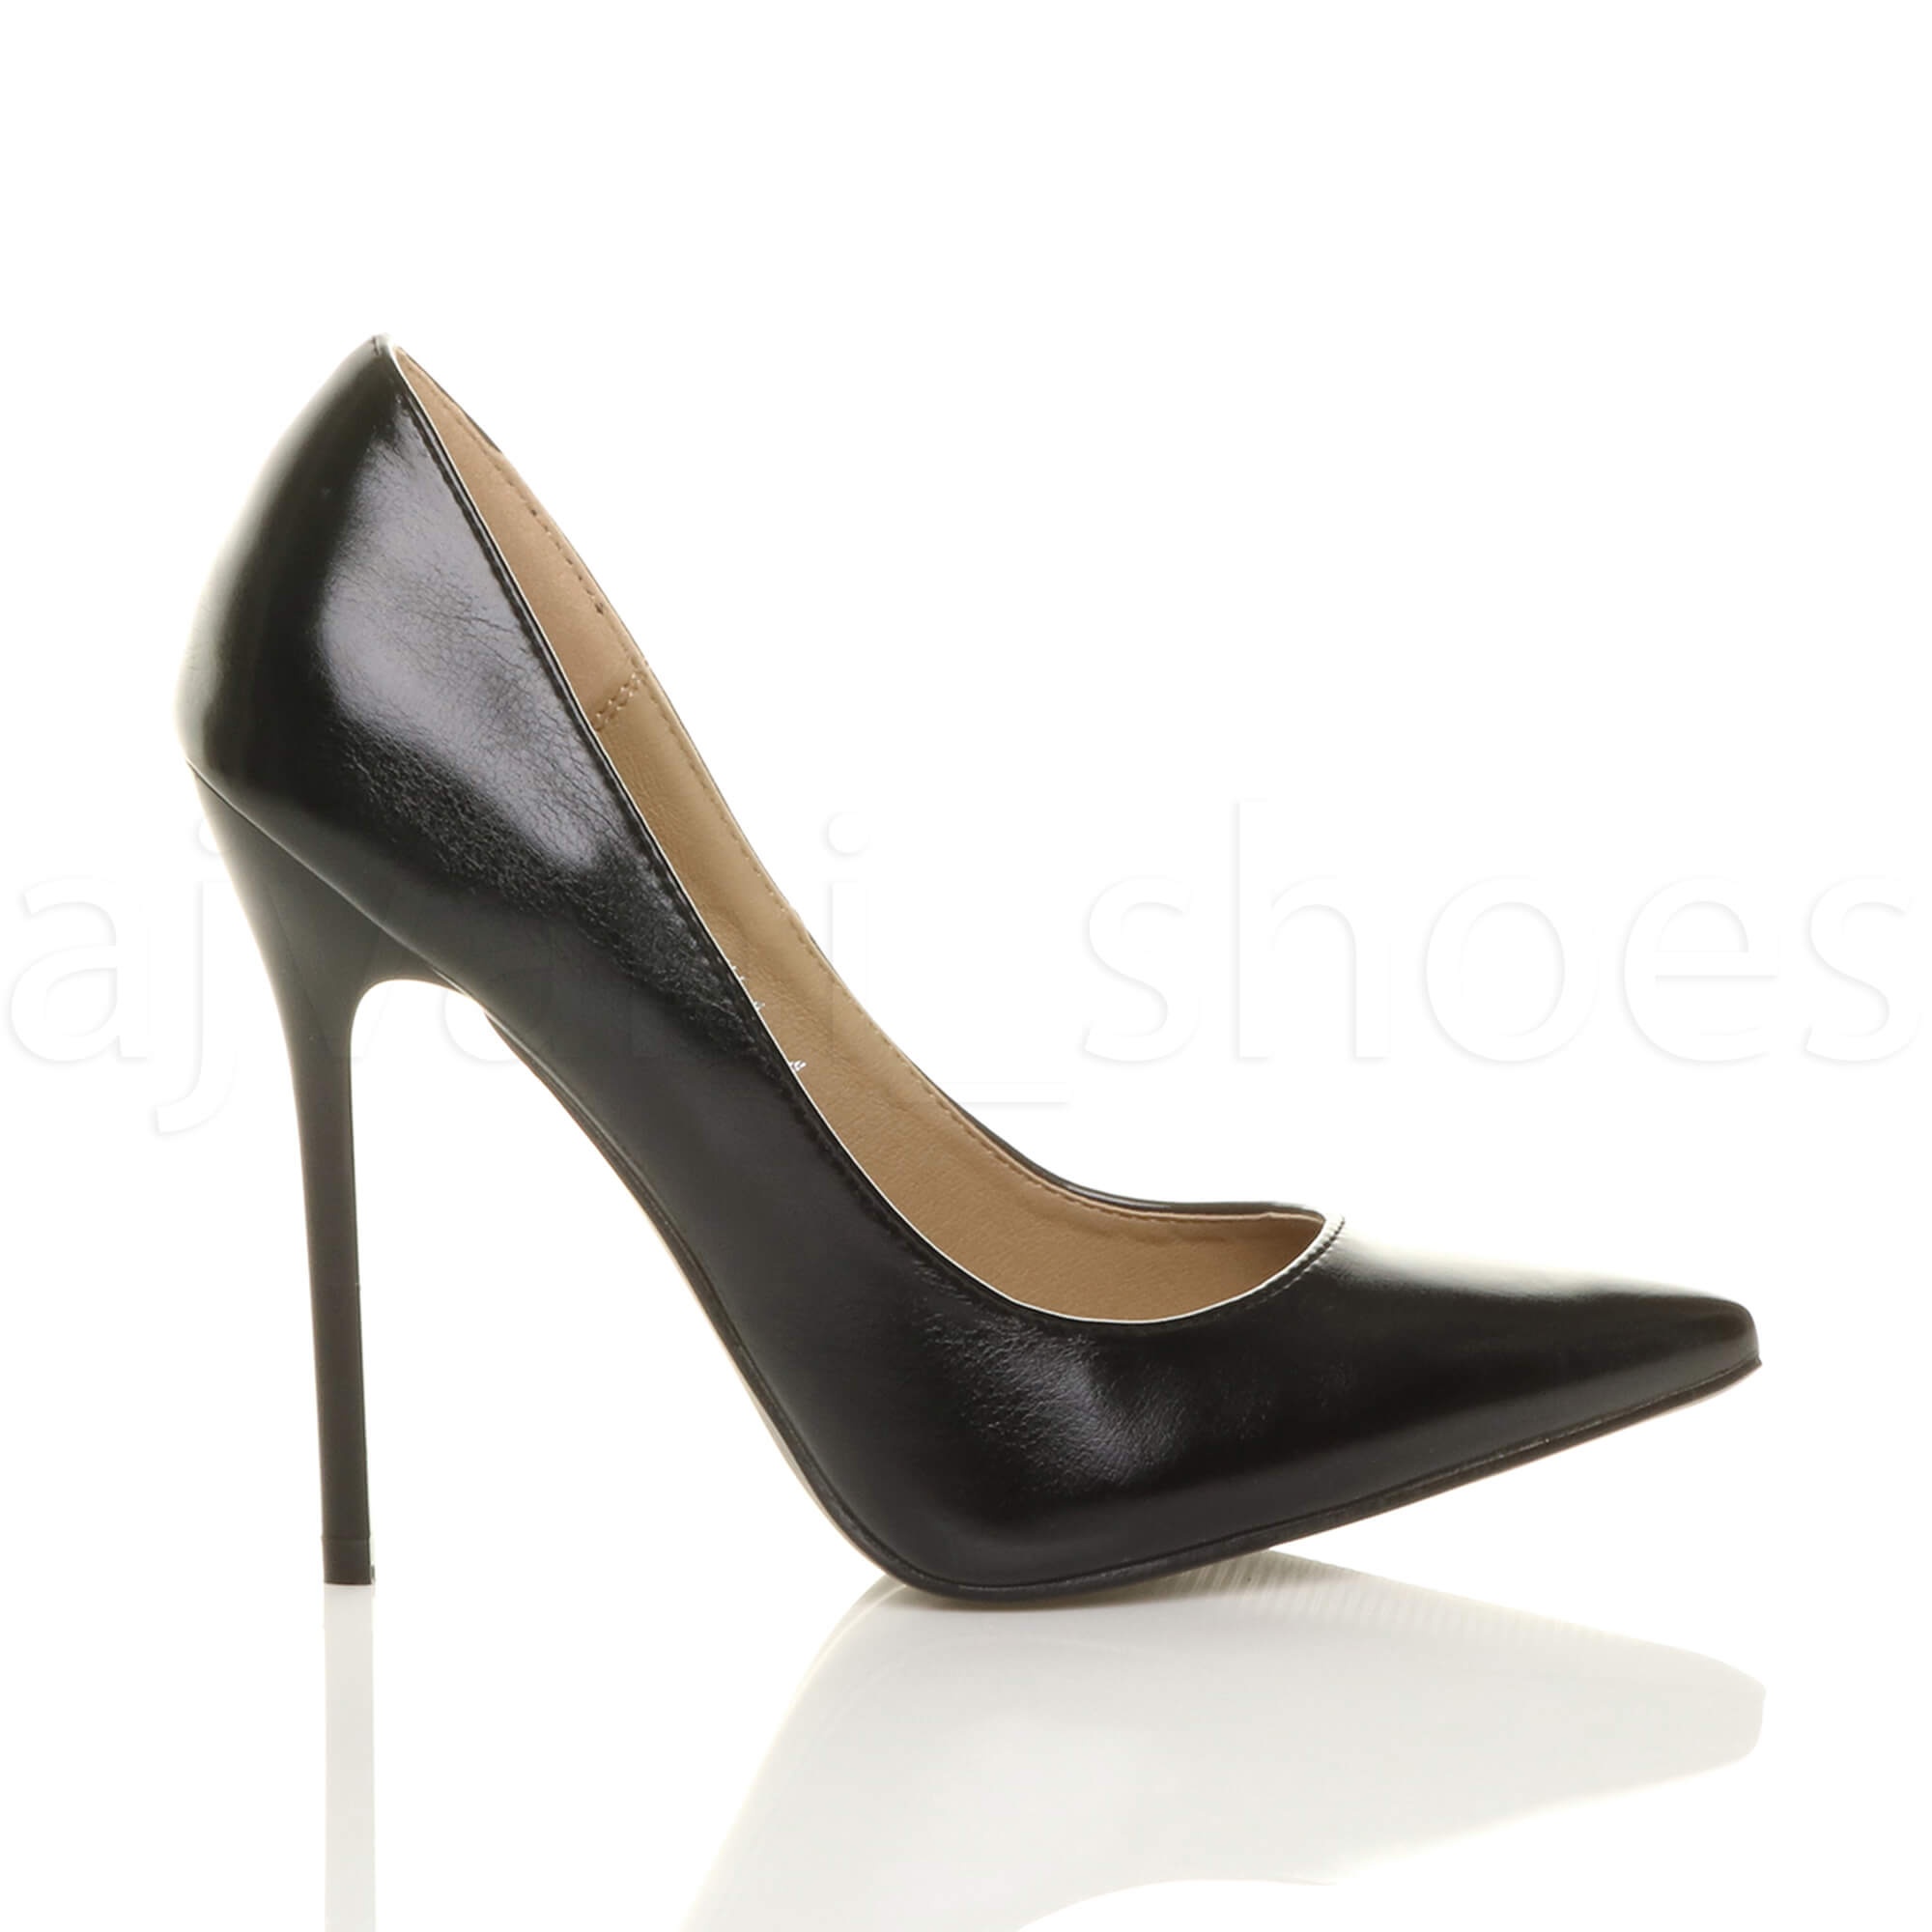 WOMENS-LADIES-HIGH-HEEL-POINTED-CONTRAST-COURT-SMART-PARTY-WORK-SHOES-PUMPS-SIZE thumbnail 11